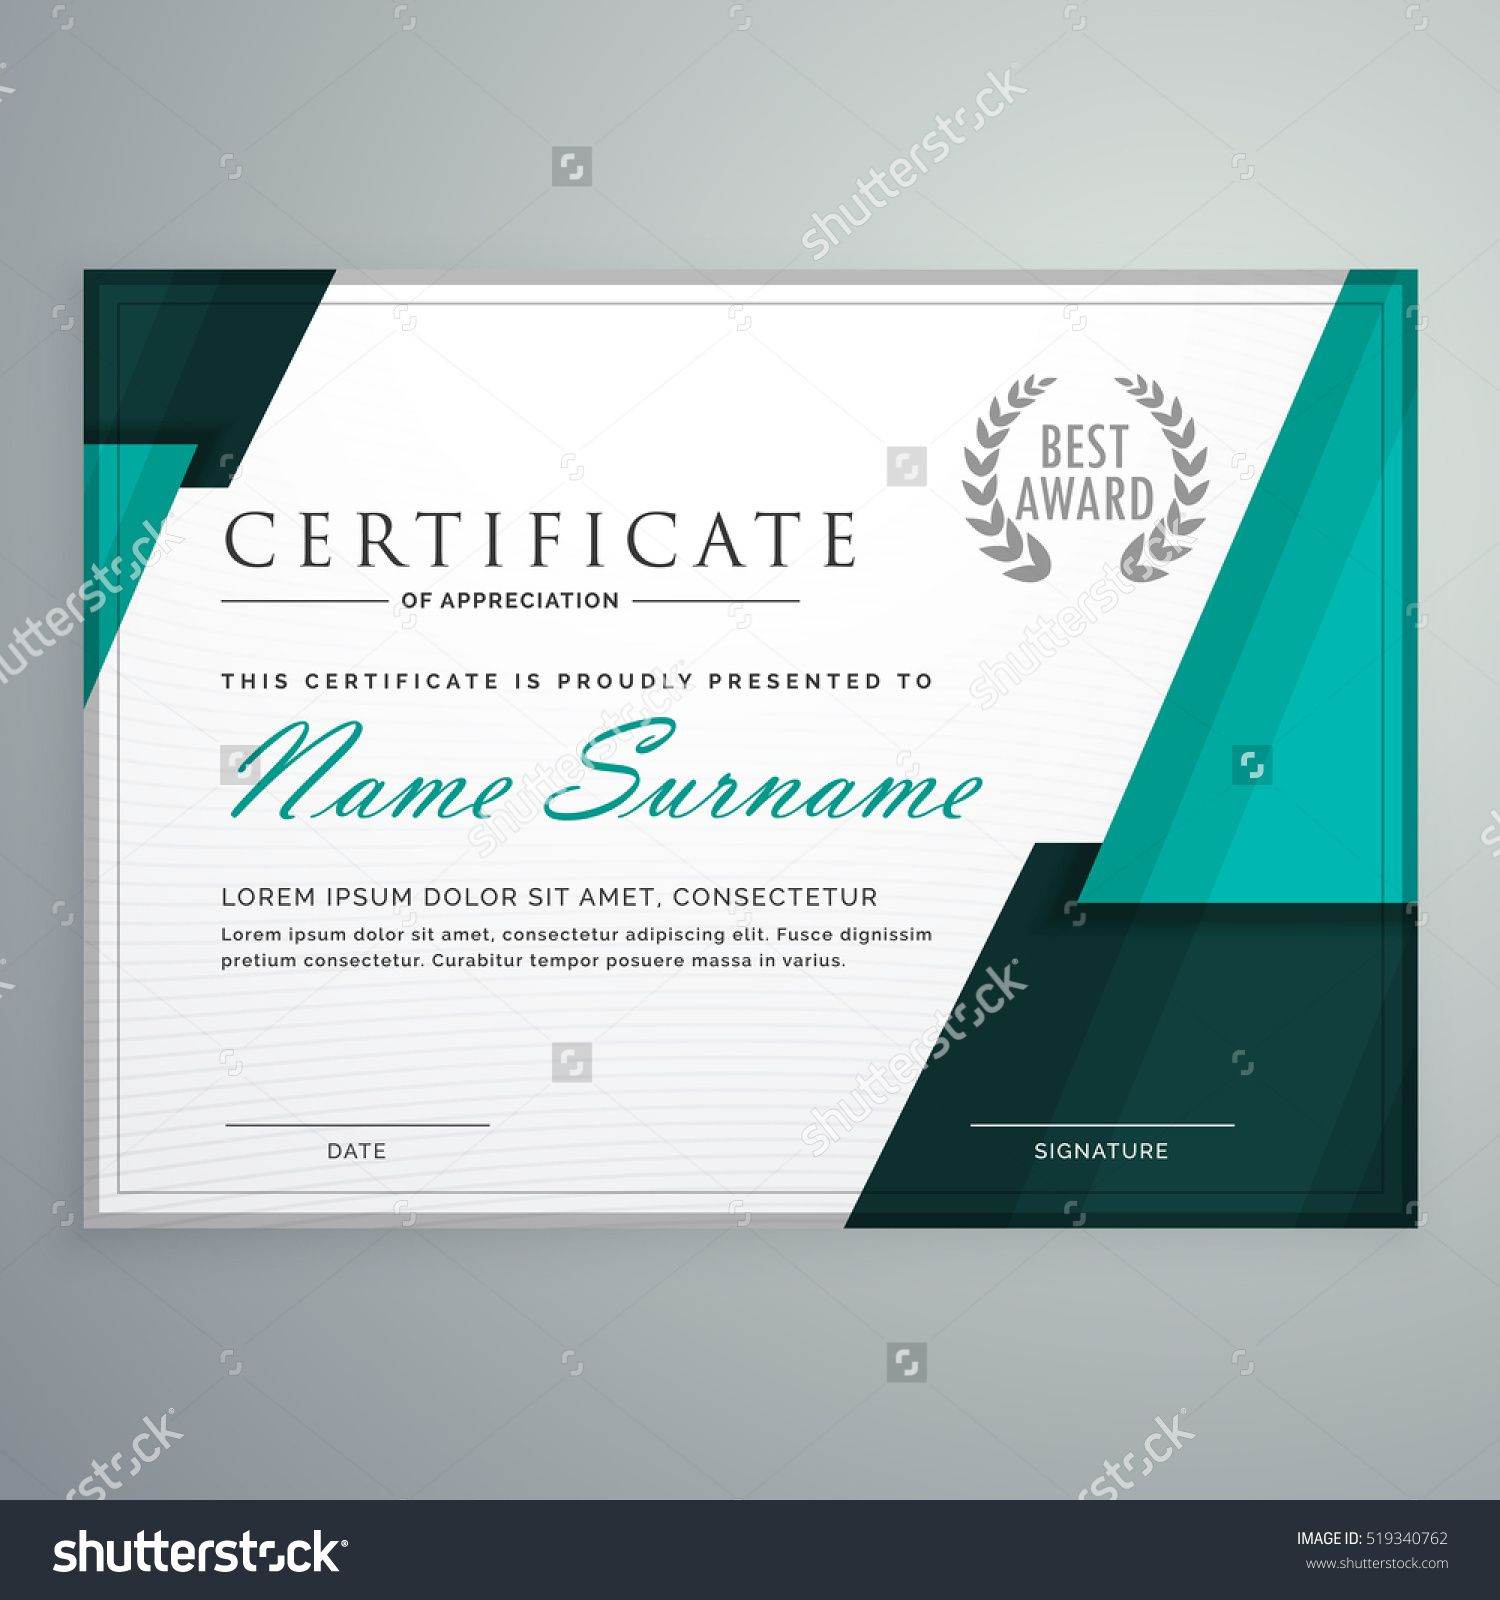 Pin By Stas Krasovsky On Certificate (With Images